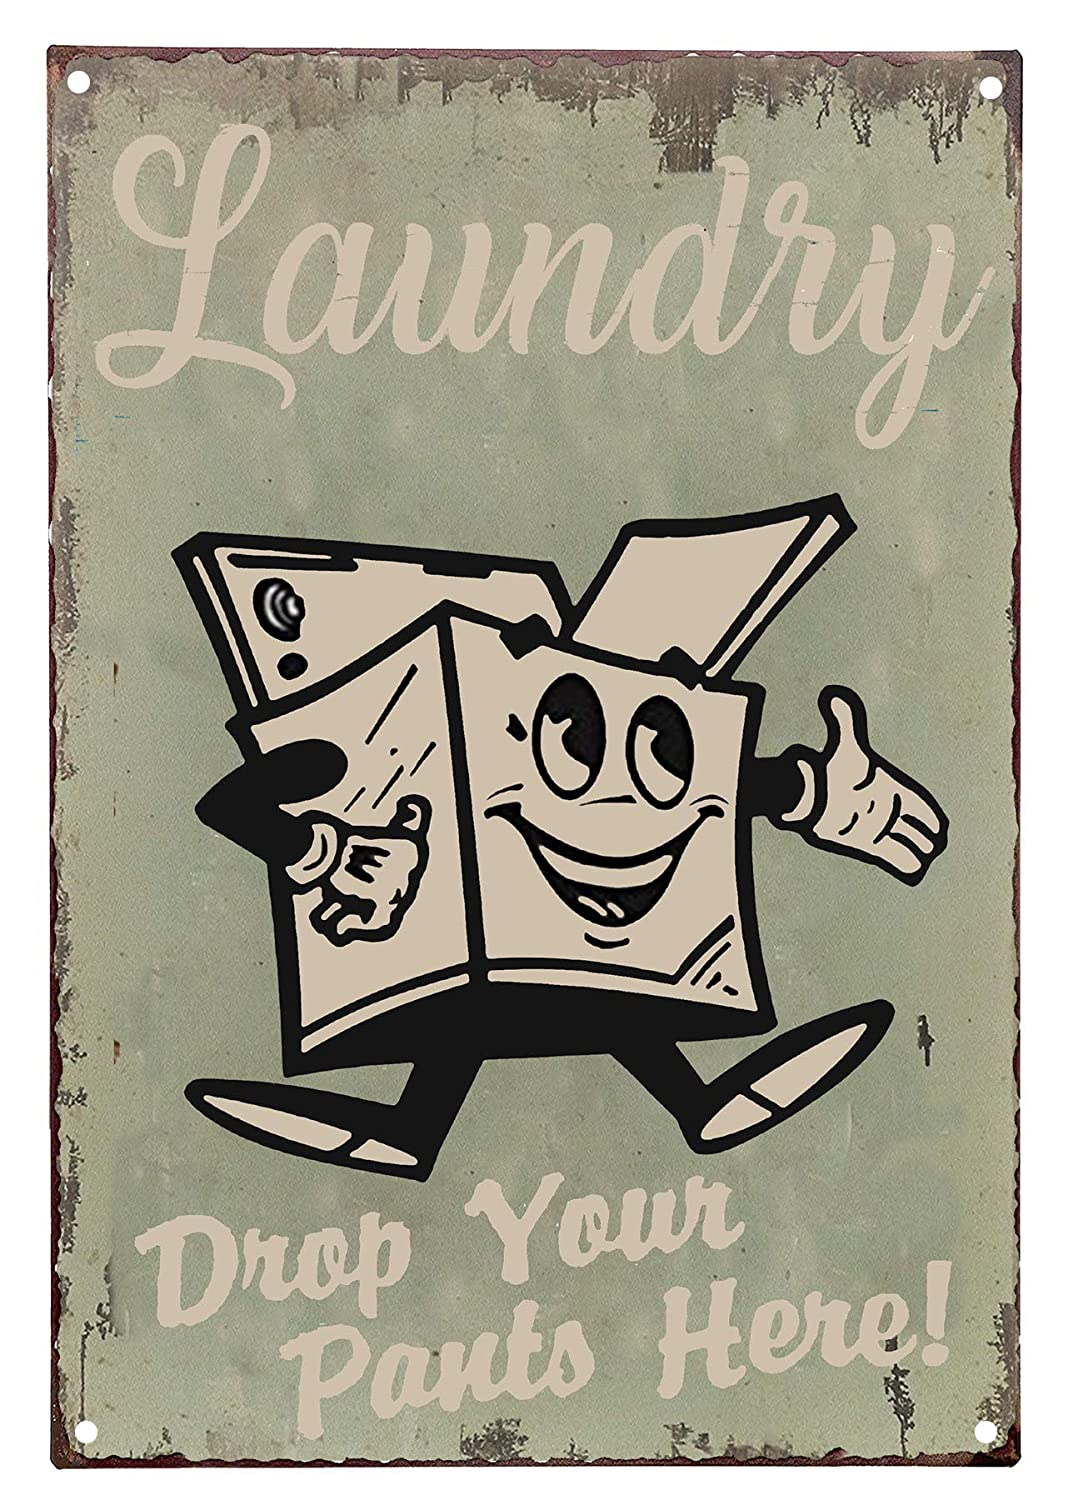 SKYC Laundry Drop Your Pants Here Vintage Retro Metal Sign Home Bathroom Laundry Decor Wash Room Signs 8X12Inch